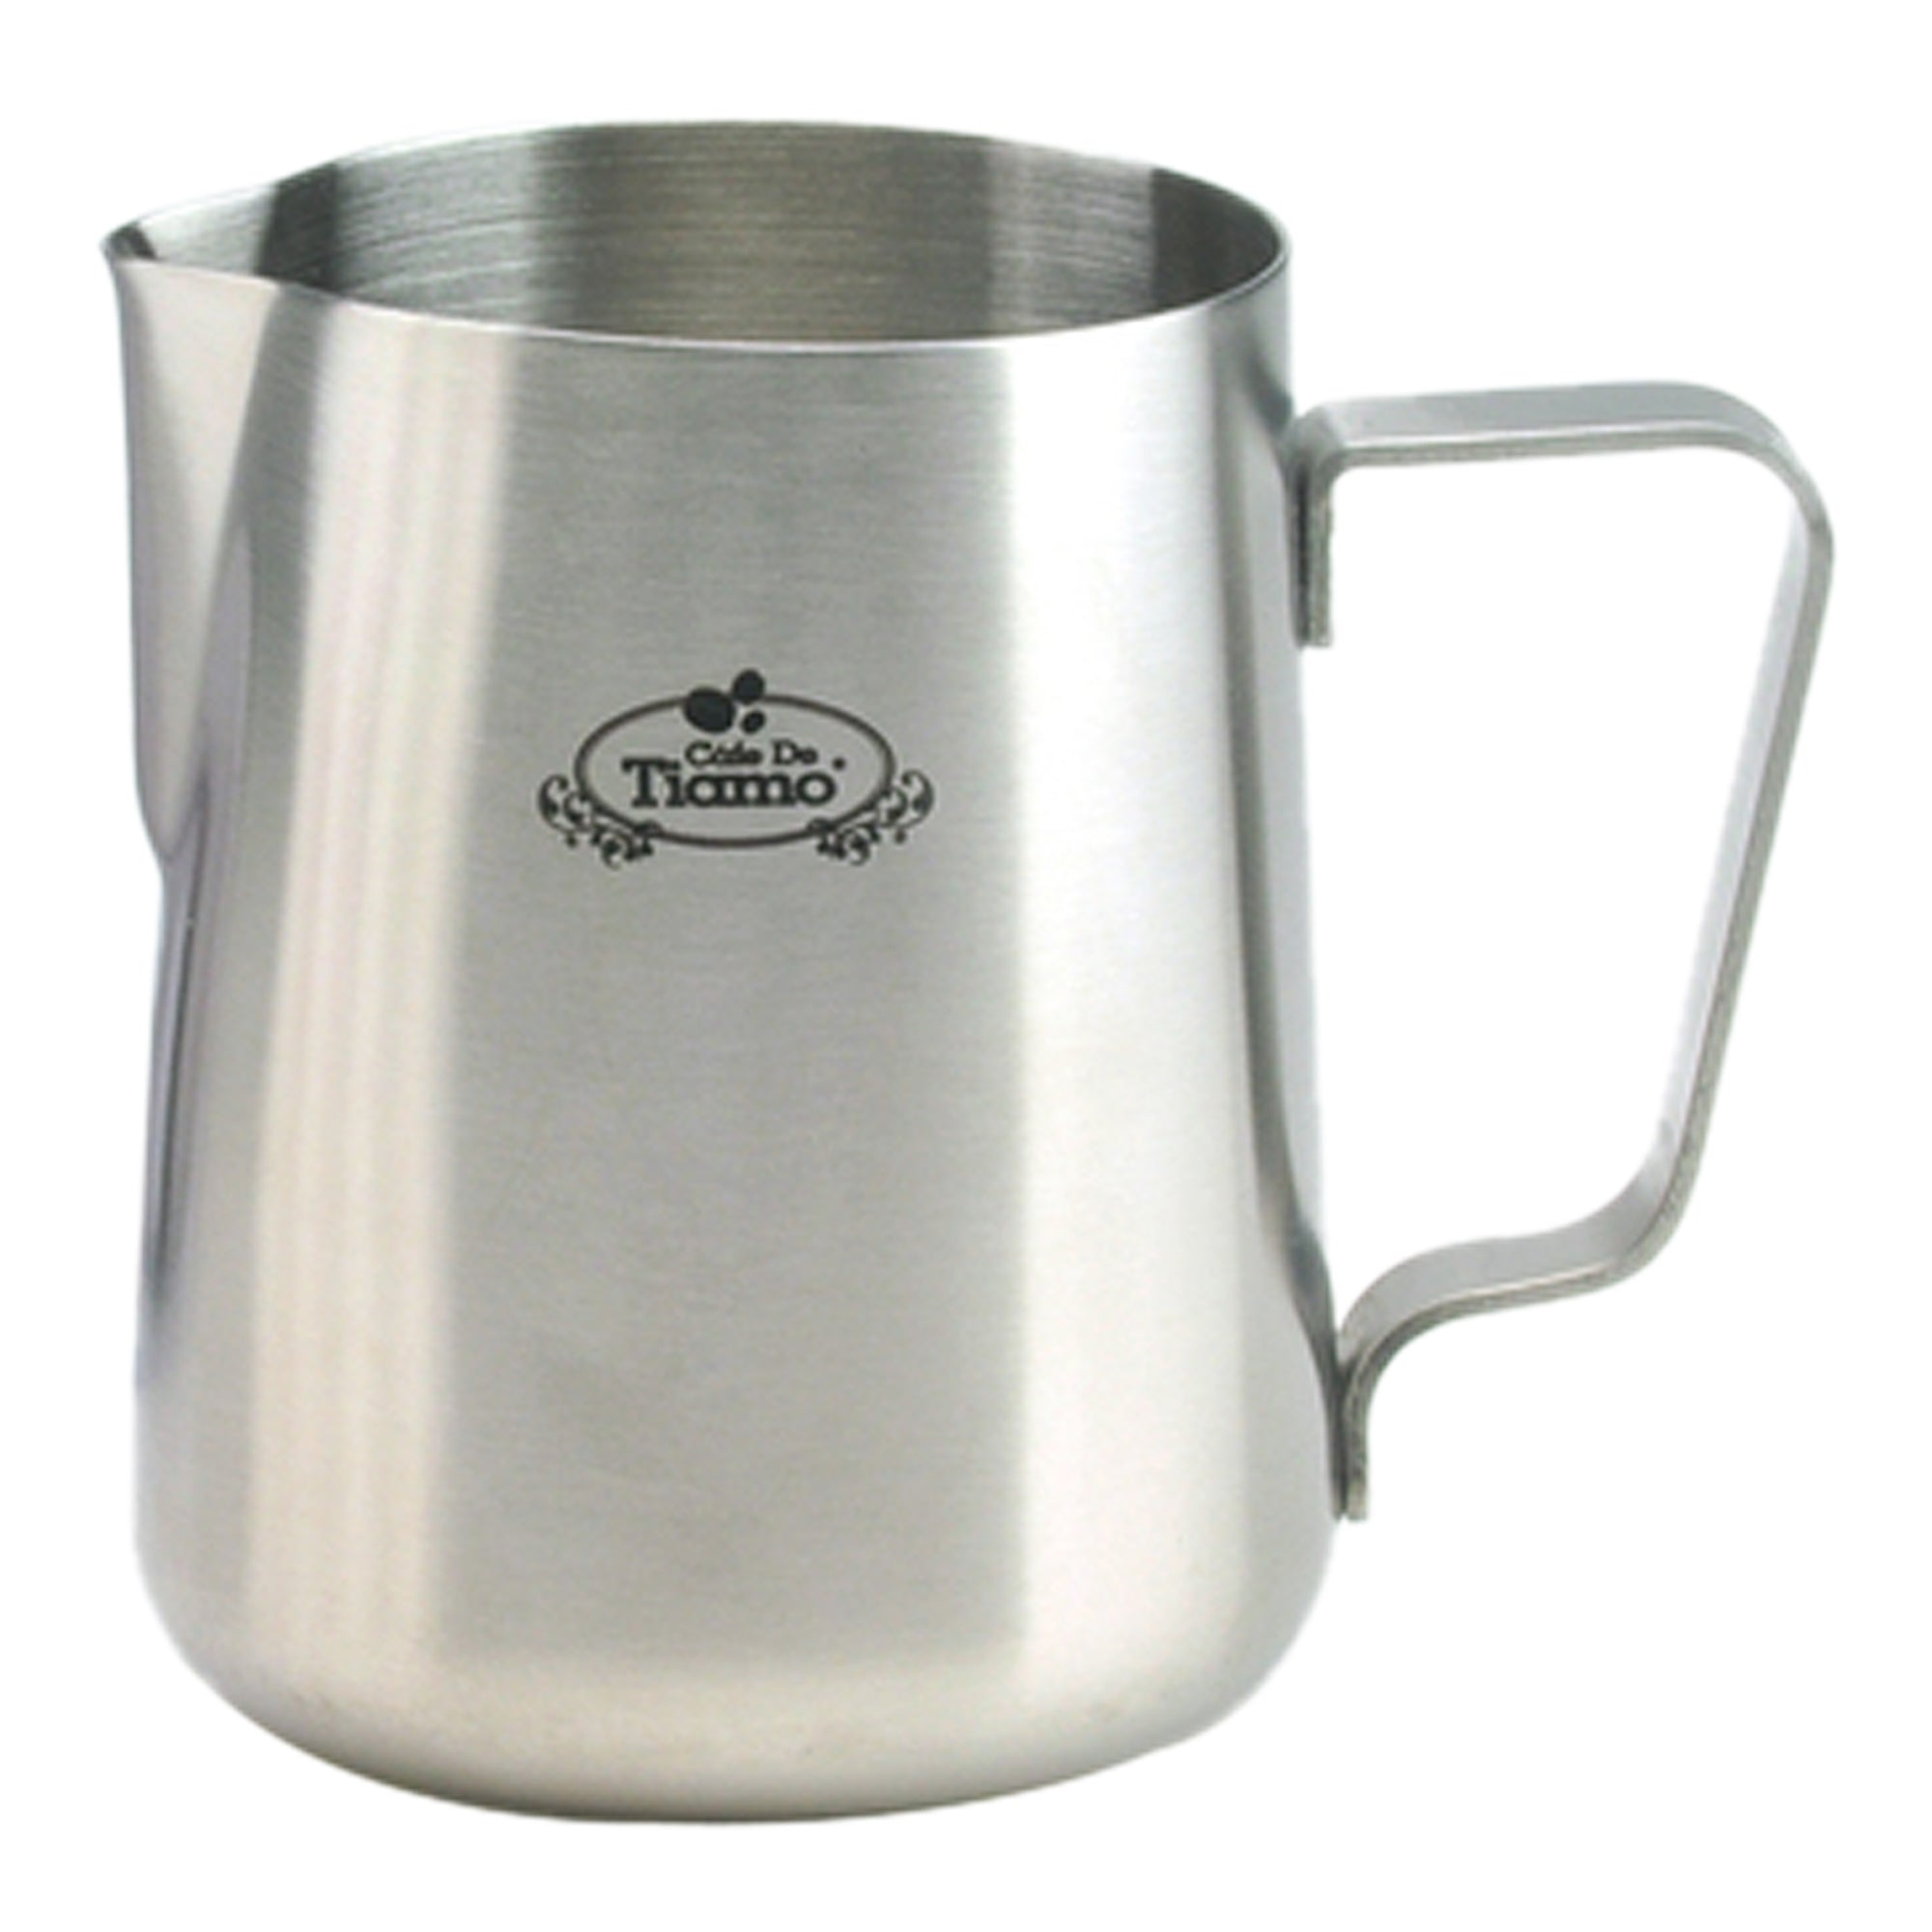 Pitcher sand polished 0.6L - Tiamo - Espresso Gear